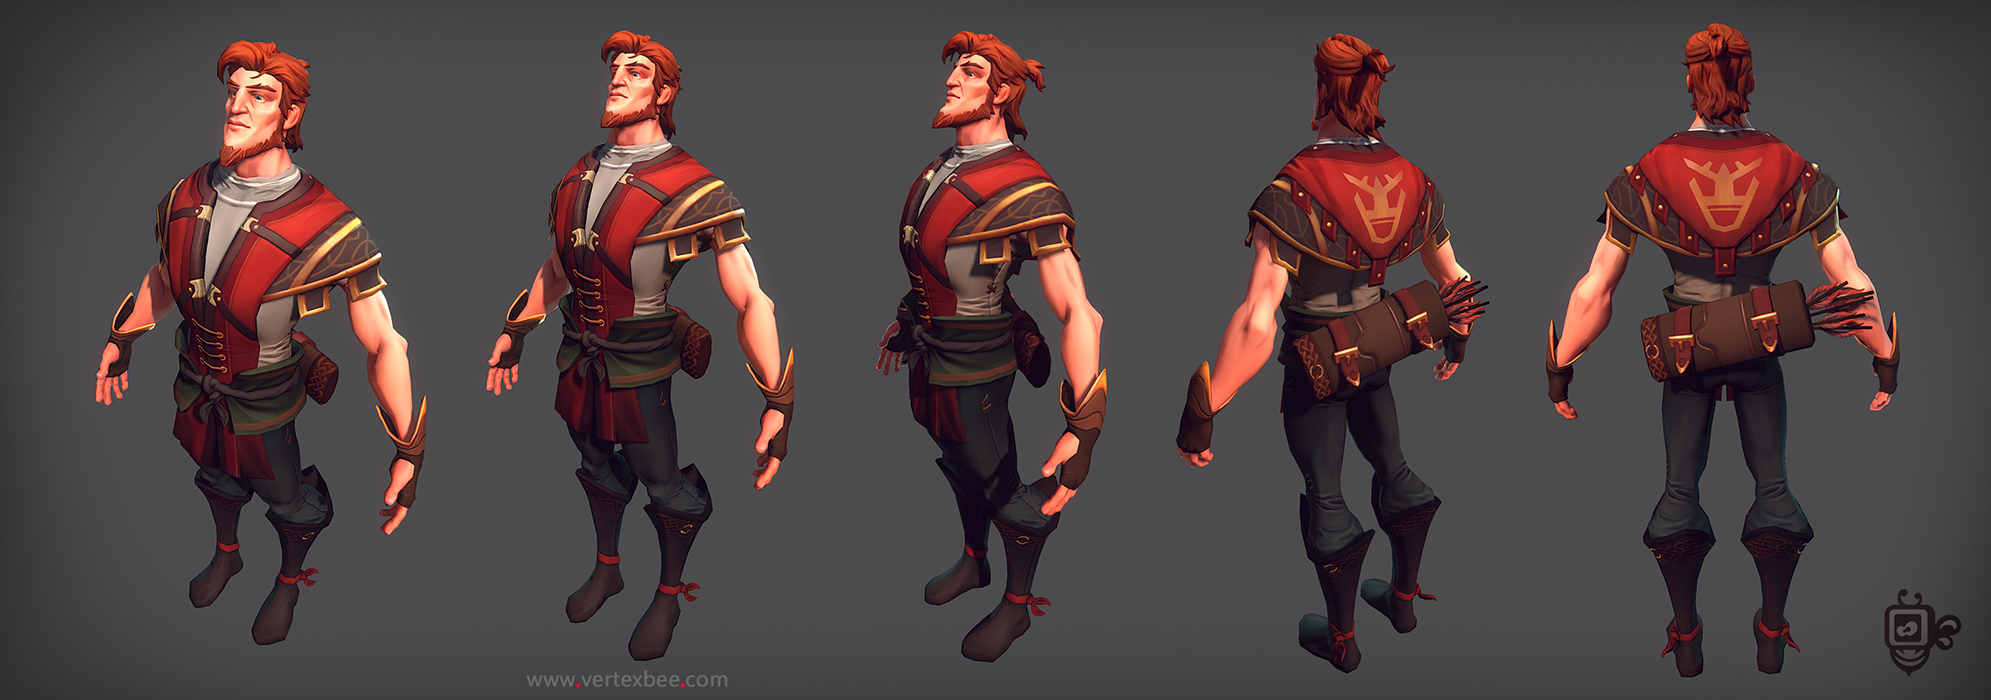 3d Game Character Design Tutorial : Archer in game model by vertexbee on deviantart